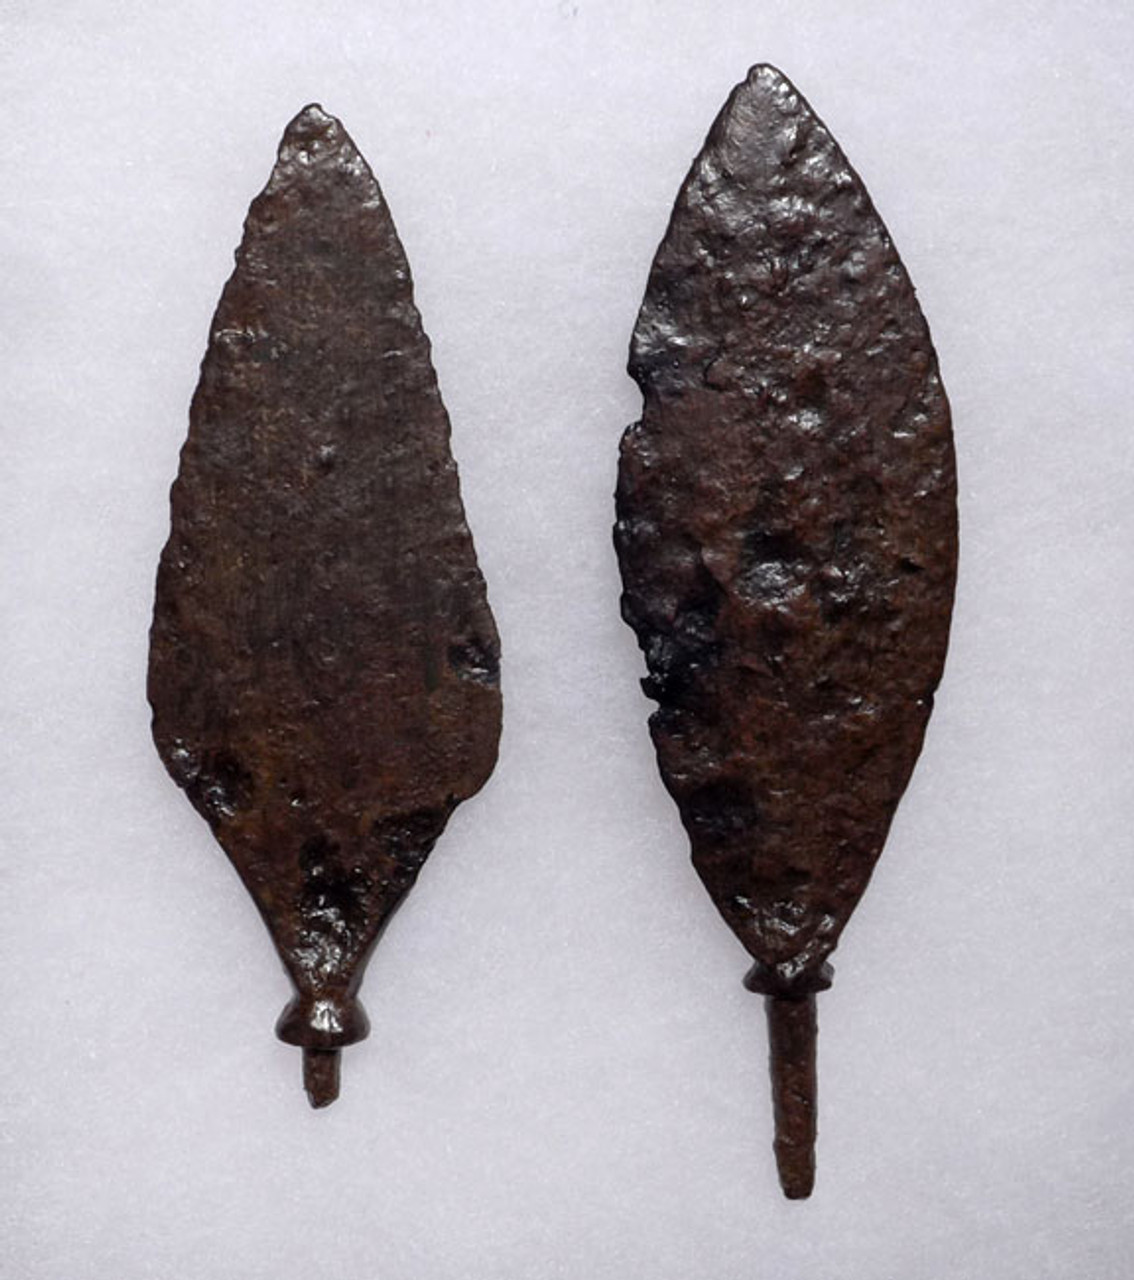 R138 - SET OF 2 LARGE ROMAN IRON ARROWHEADS FROM THE BYZANTINE ERA